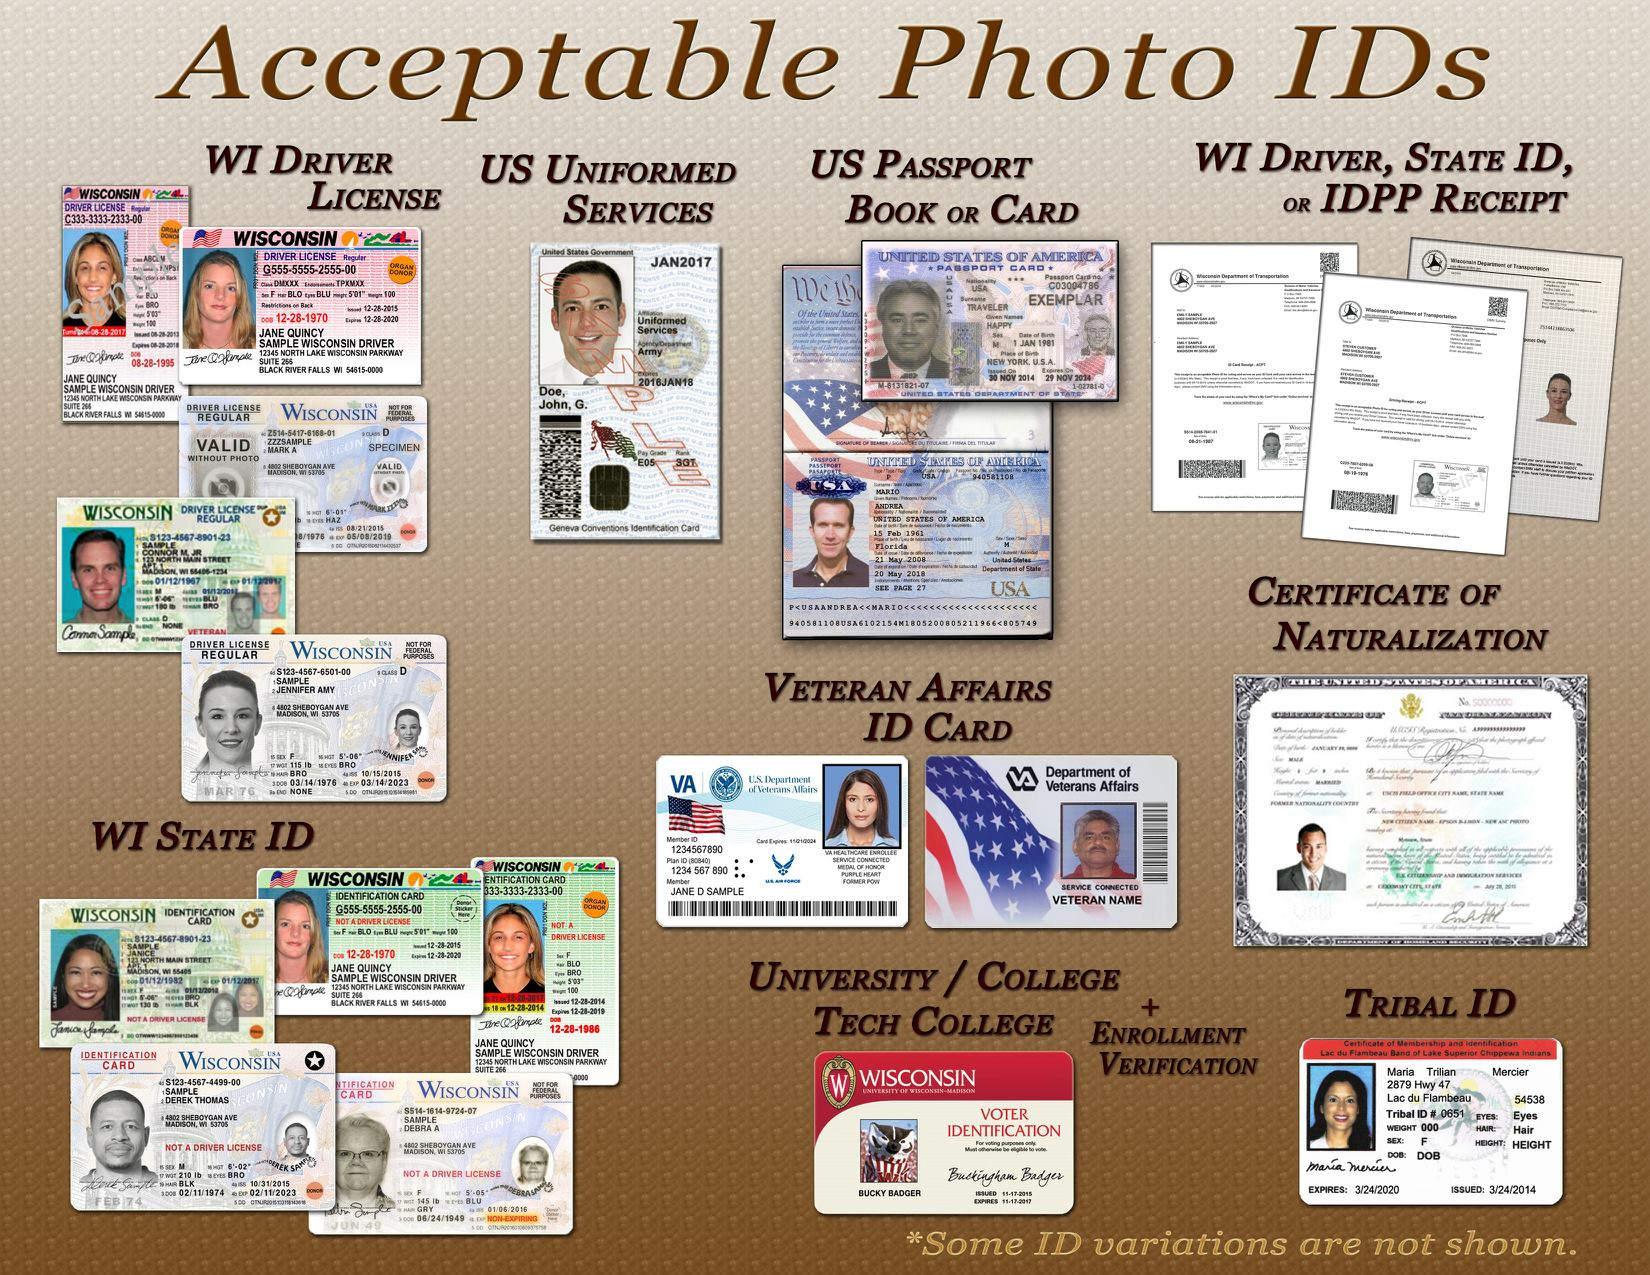 Acceptable Photo IDs include: A Wisconsin Driver License, US Uniformed Services card, A US Passport Book or Card, A Wisconsin State ID, a Certificate of Naturalization, a Tribal ID, a College ID plus enrollment verification, a Veteran Affairs ID Card, or a Wisconsin Driver, State ID or IDPP Receipt.